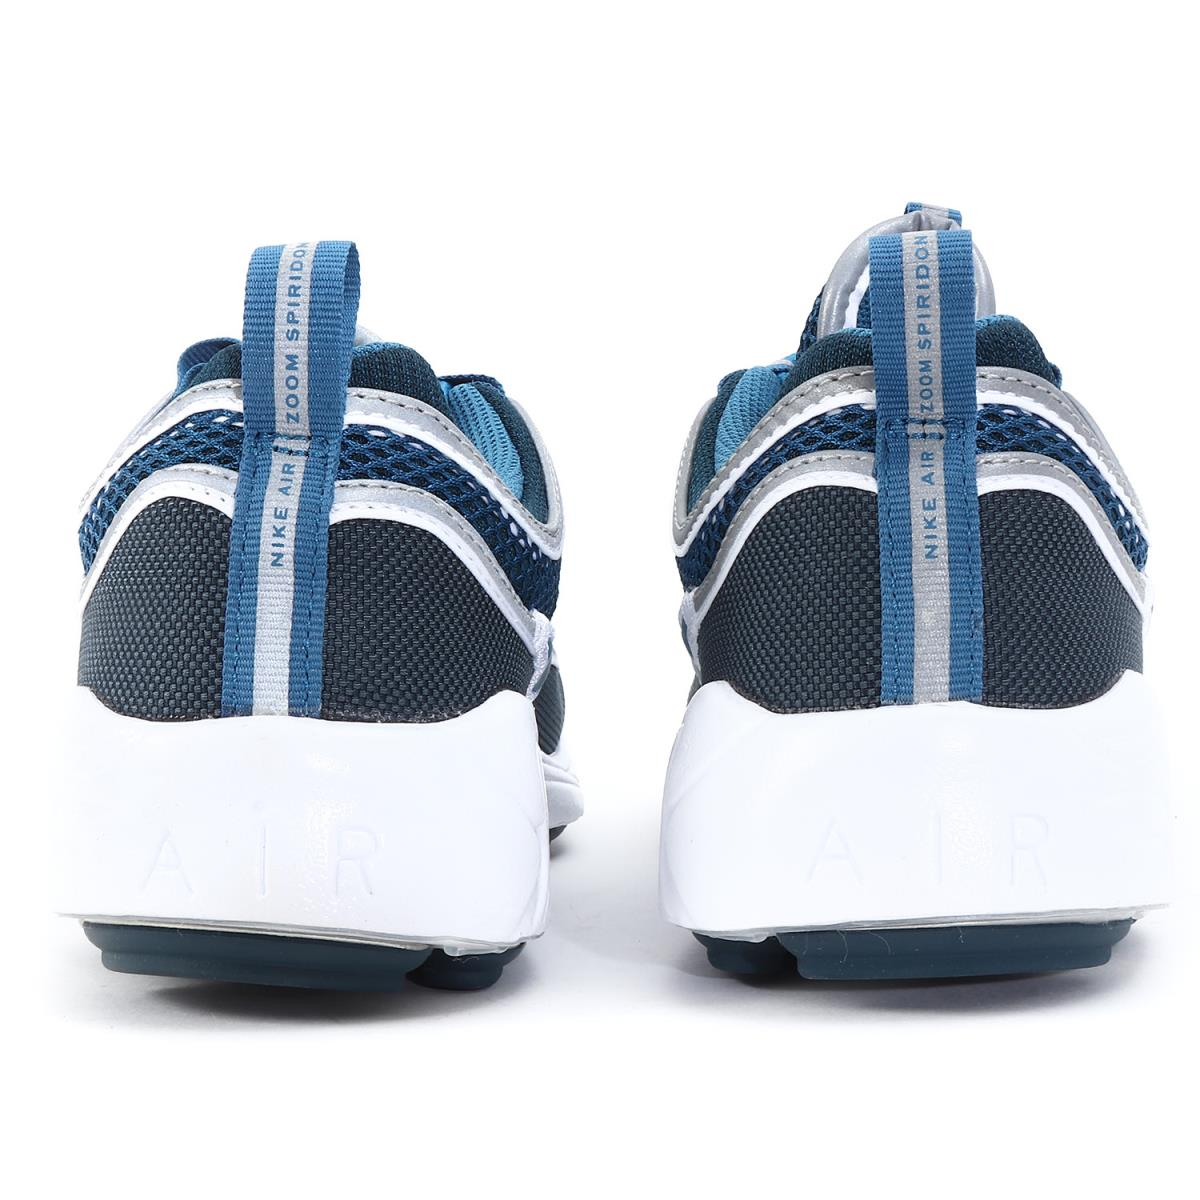 5ae6c9967258 BEEGLE by Boo-Bee  NIKE (Nike) Japanese non-release AIR ZOOM ...